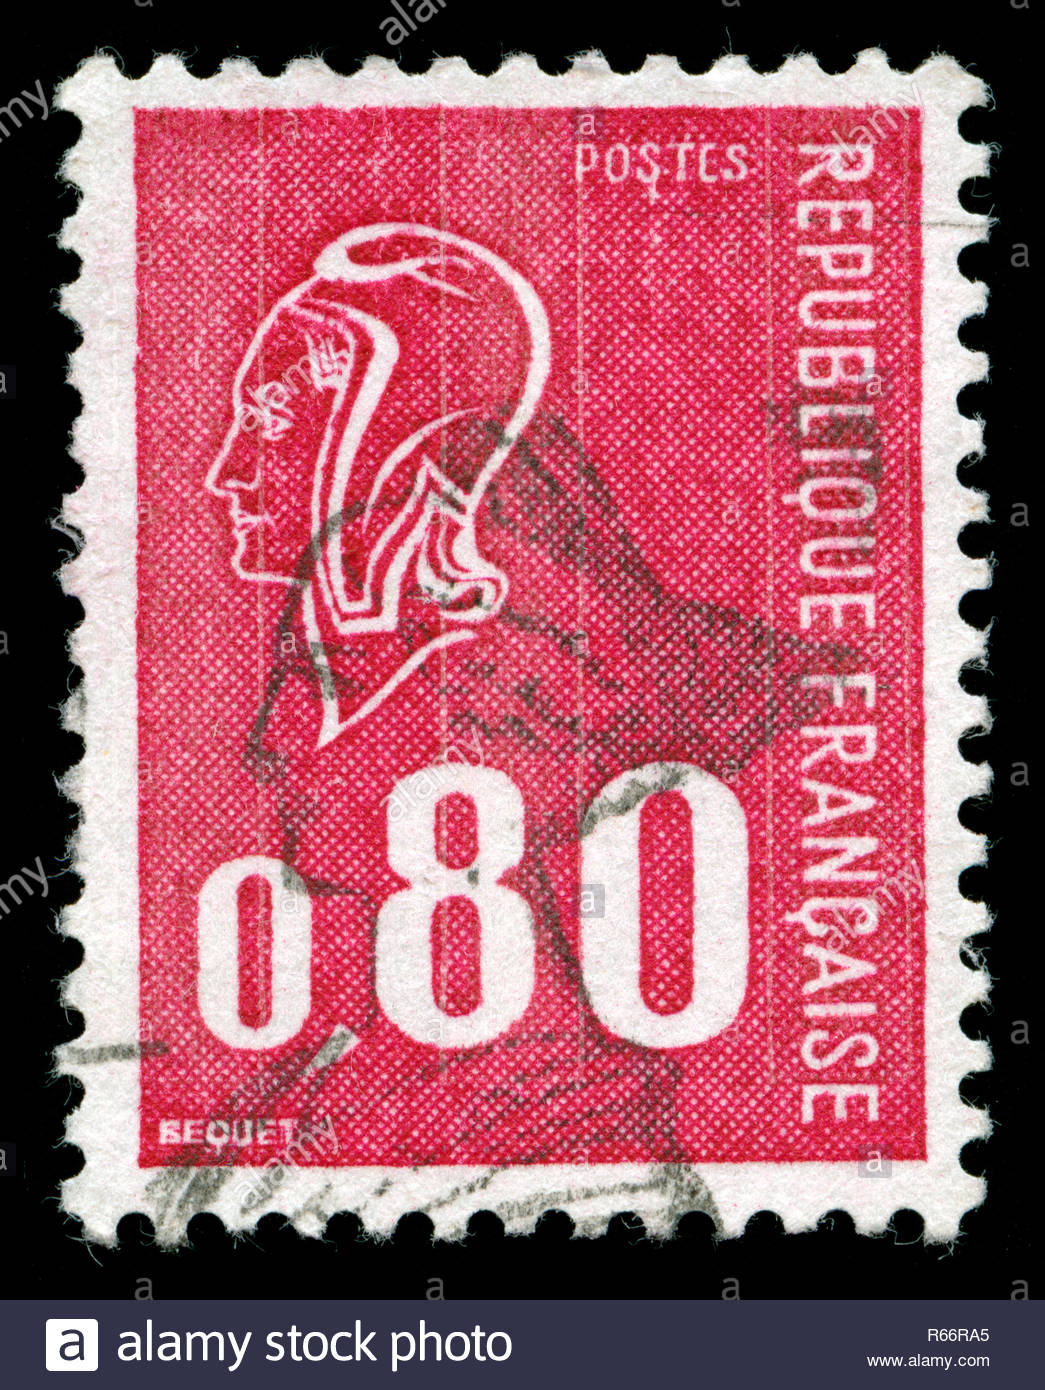 Postage stamp from France in the Marianne (Béquet) series issued in 1974 - Stock Image